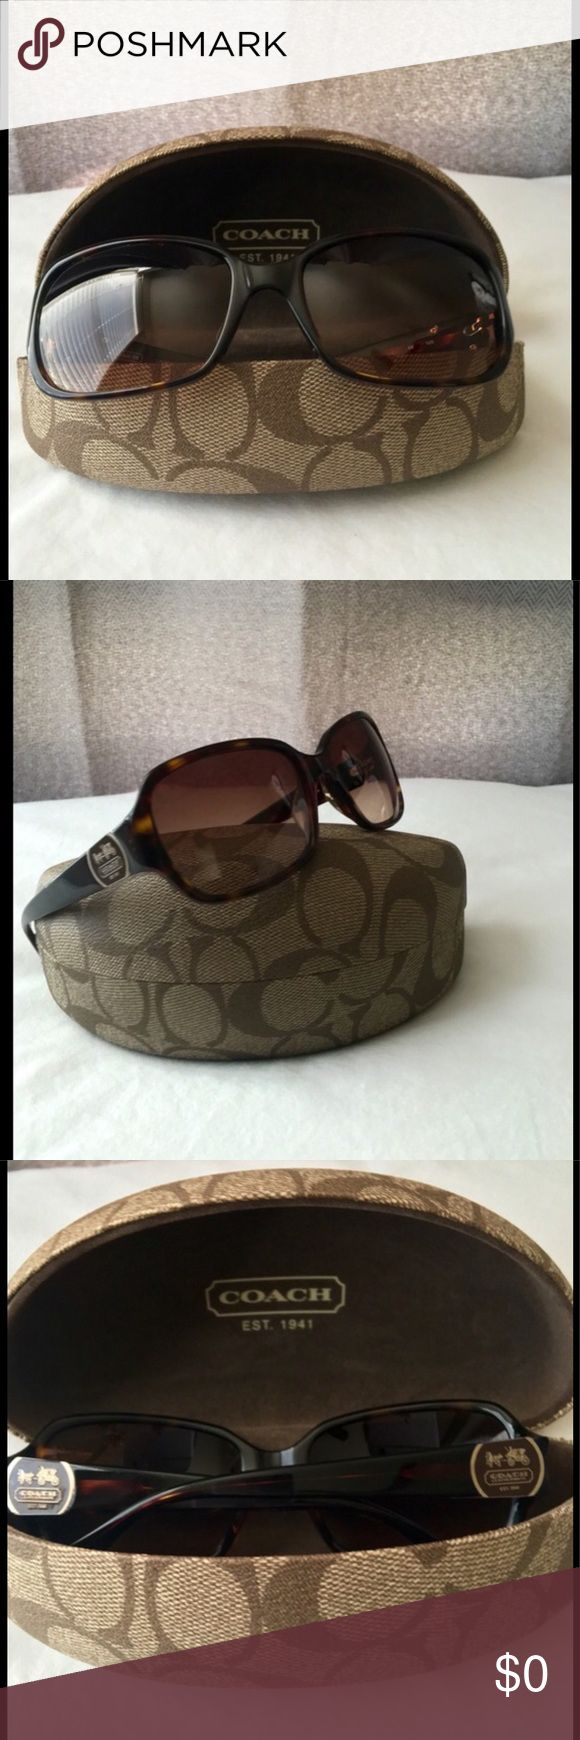 Coach Sunglasses Coach Turquoise Sunglasses (S2048) 58[]16[]125 Preowned tiny scratch inside of arm /very tiny visible sign of tiny scratch on left lens! Comes with authentic Coach case but not original to these particular Sunglasses!Price Firm! Coach Accessories Glasses